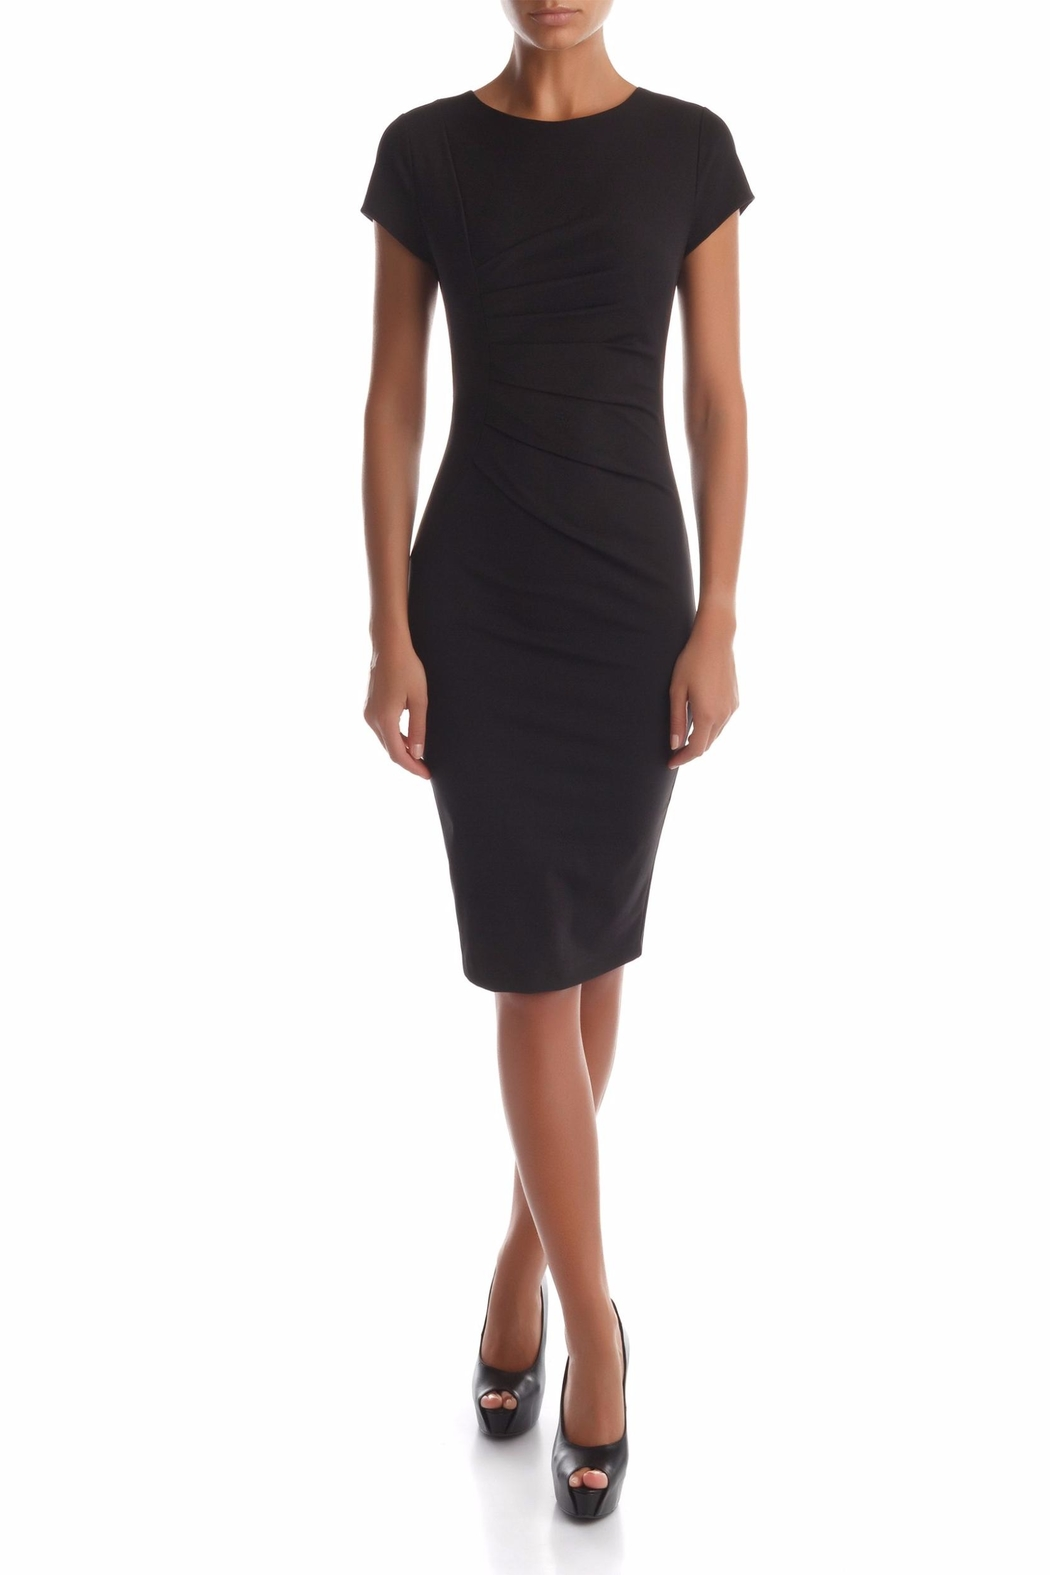 Rinascimento Black Ruche Dress - Front Cropped Image